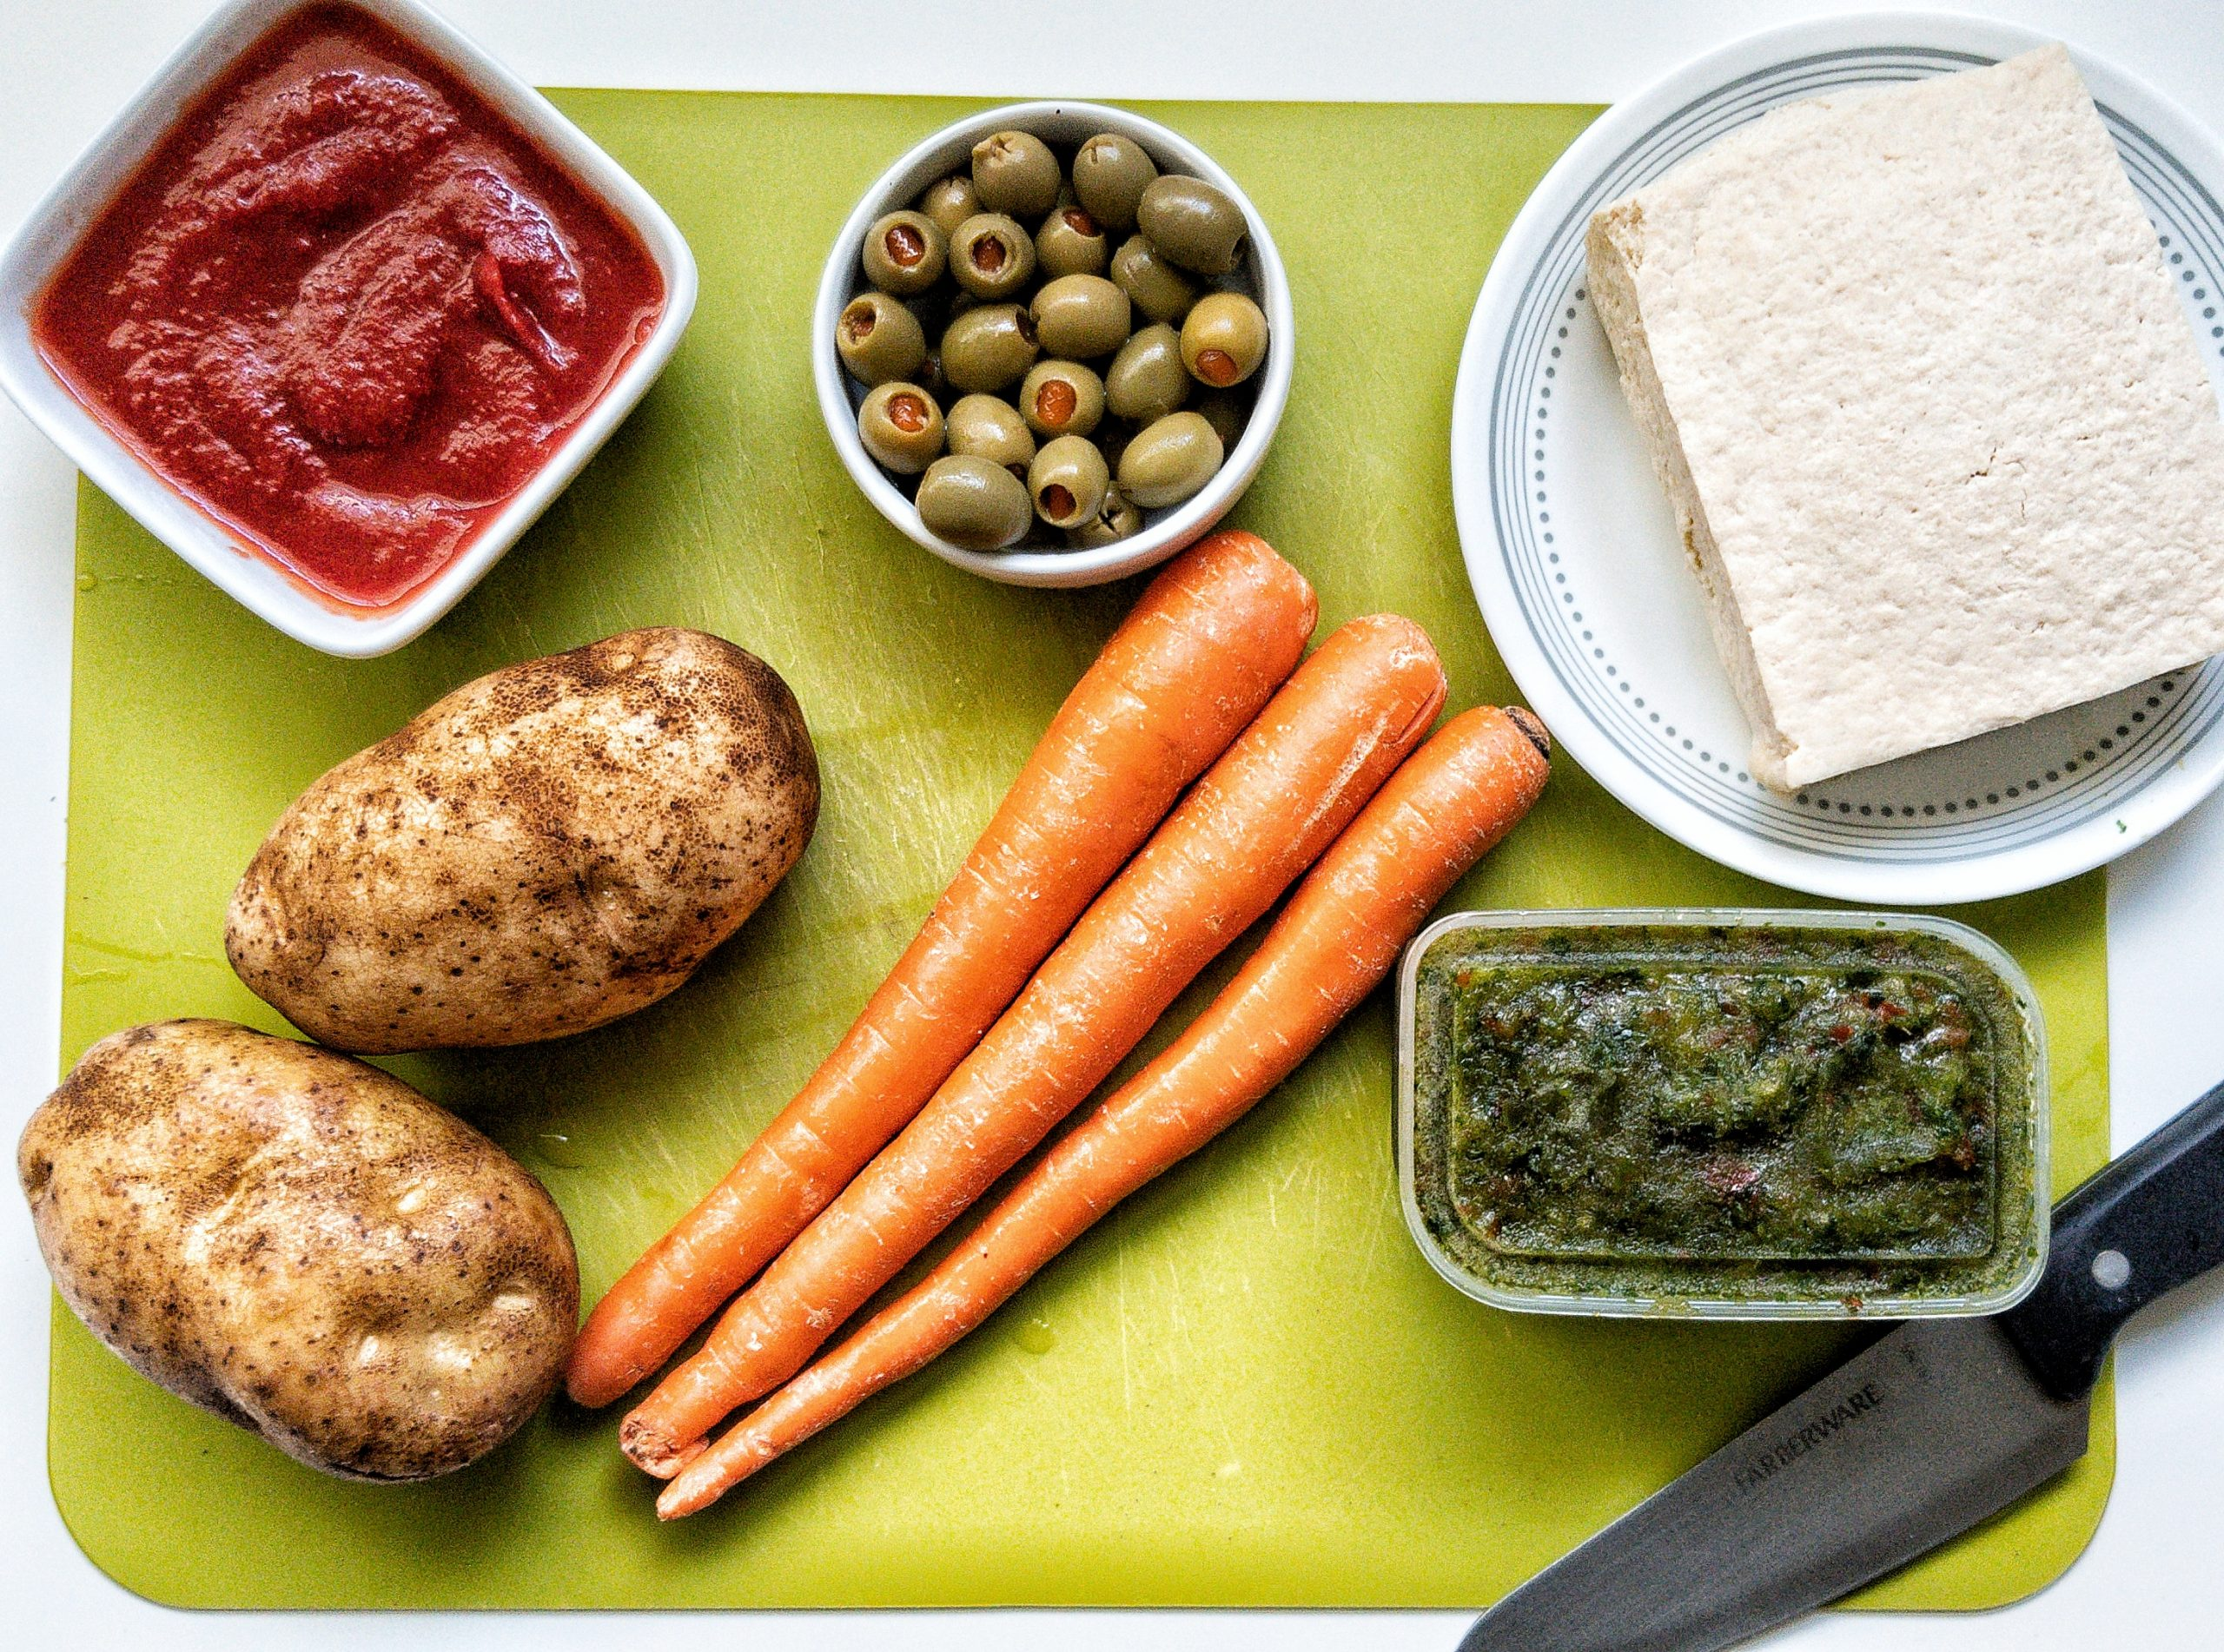 Green chopping board with whole potatoes, carrots, sofrito, tofu block, green Spanish olives, and tomato sauce